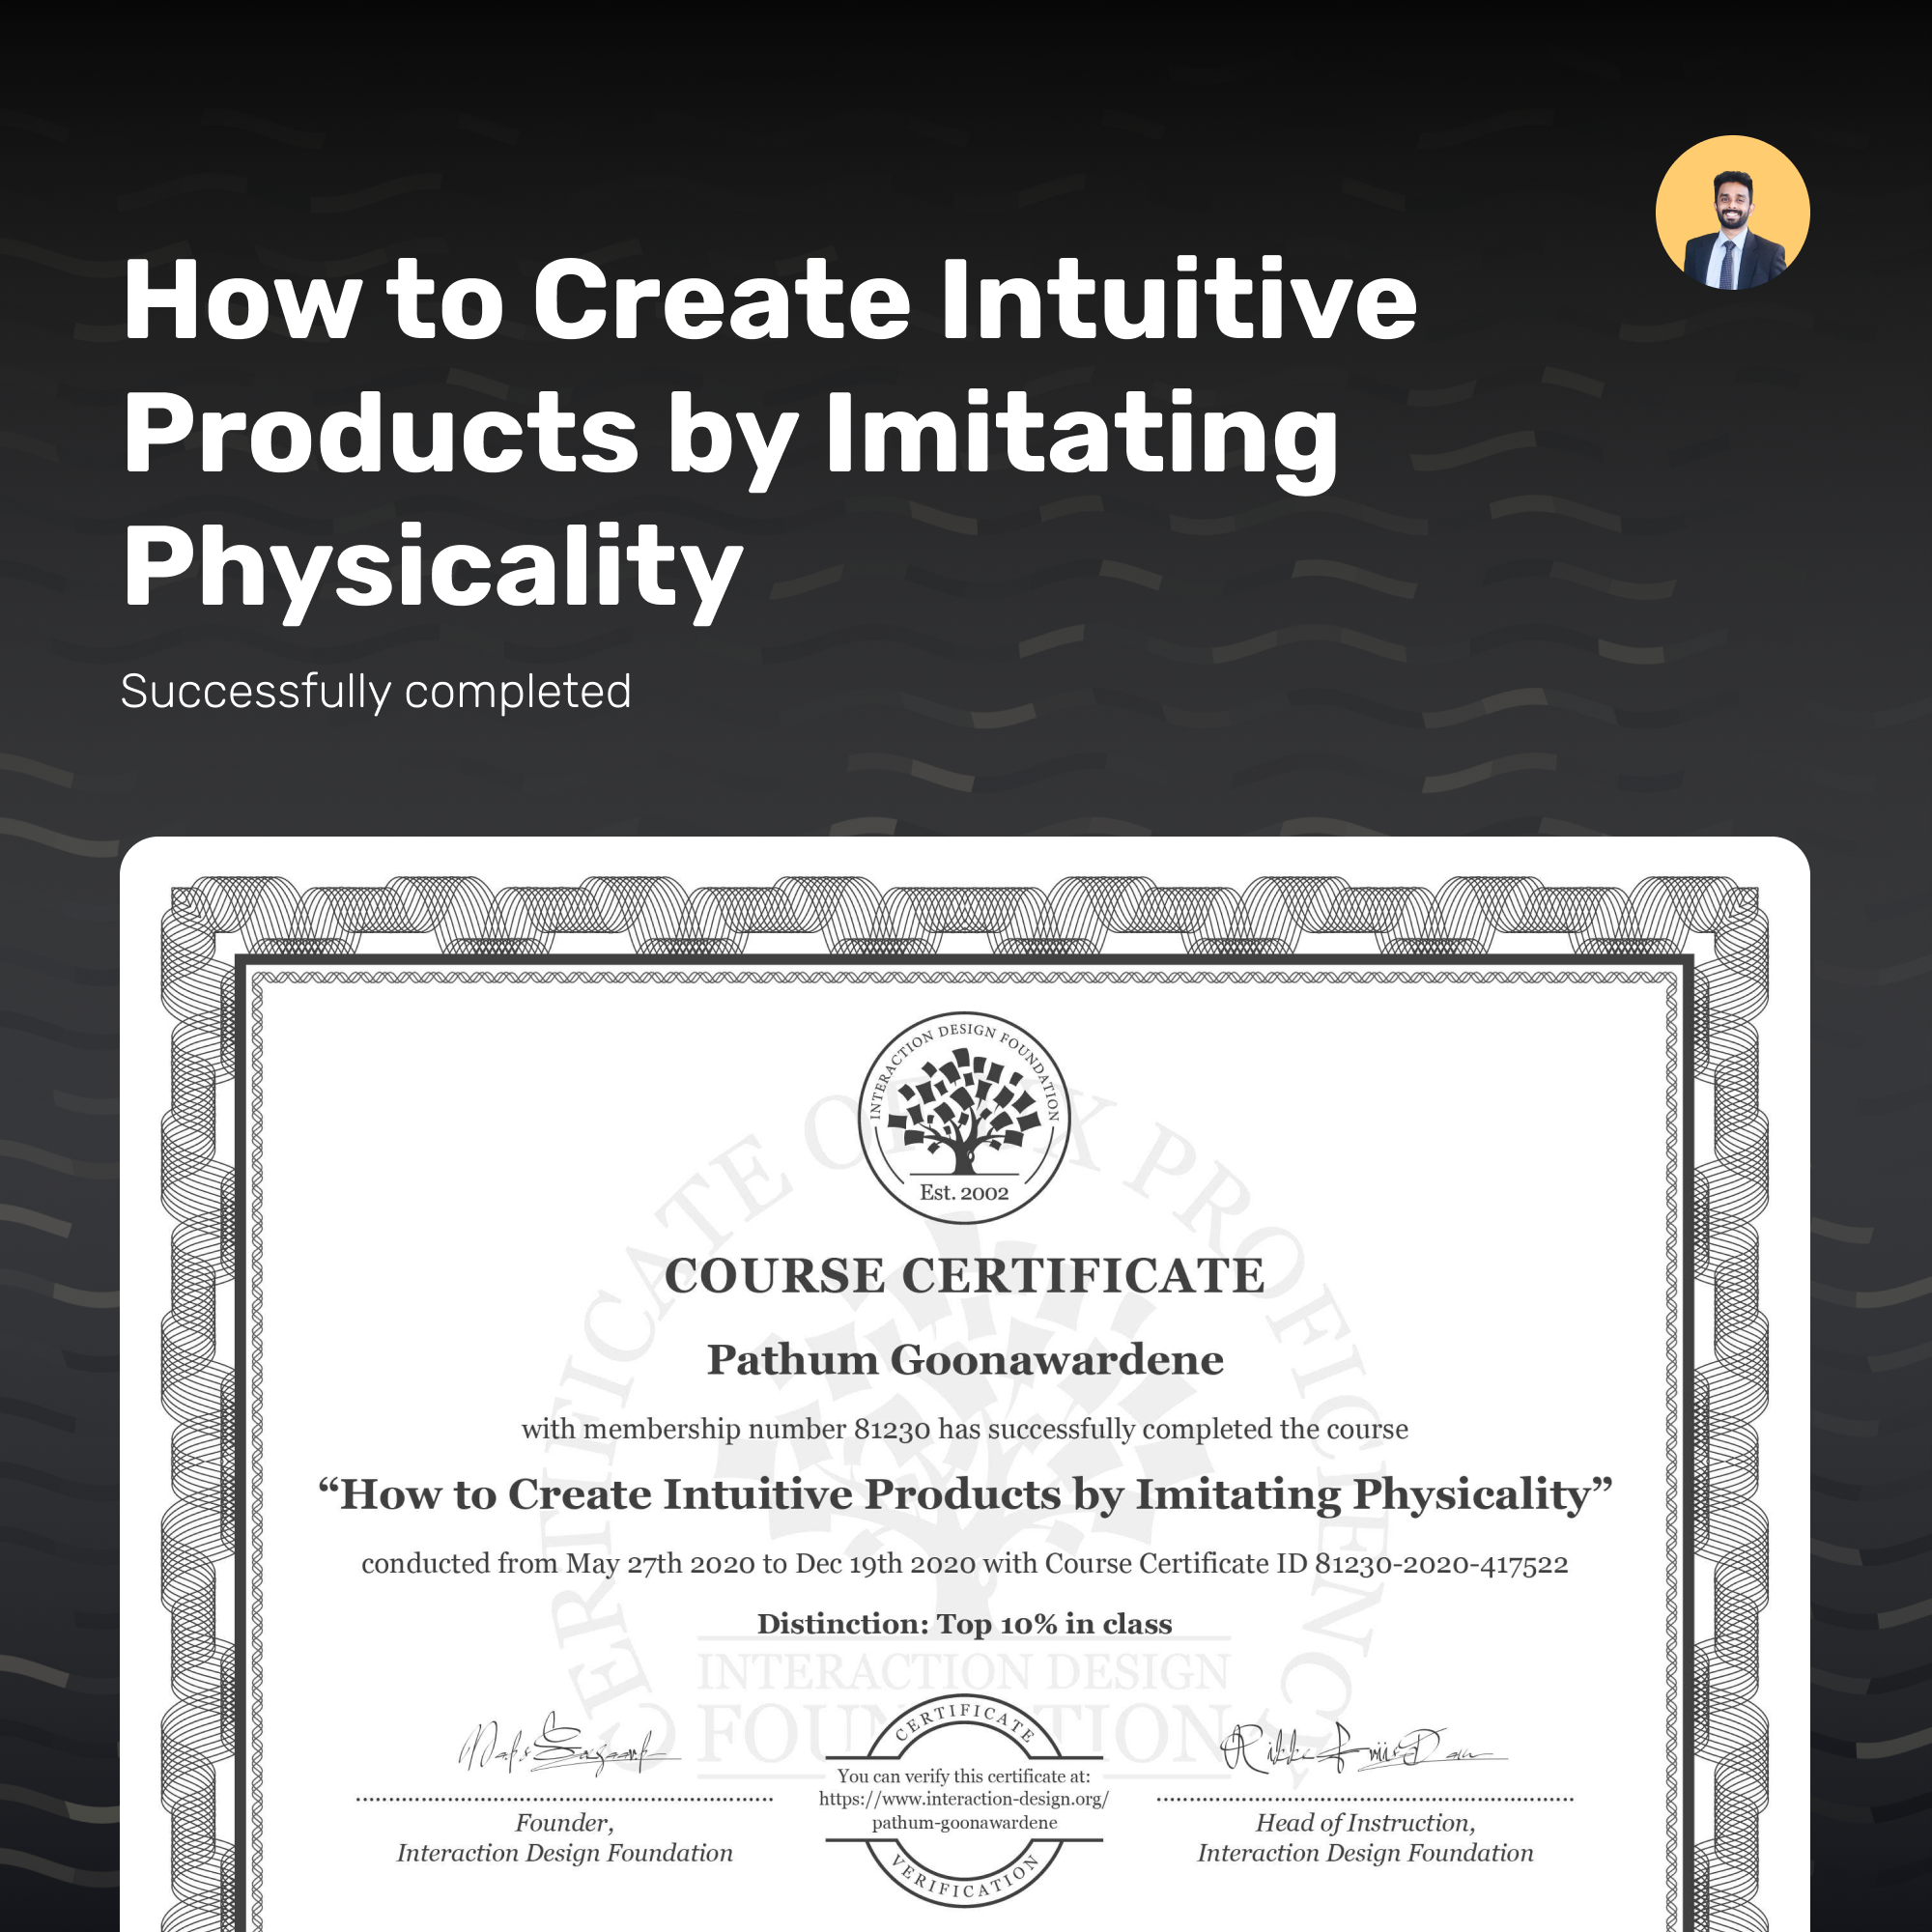 How to Create Intuitive Products by Imitating Physicality